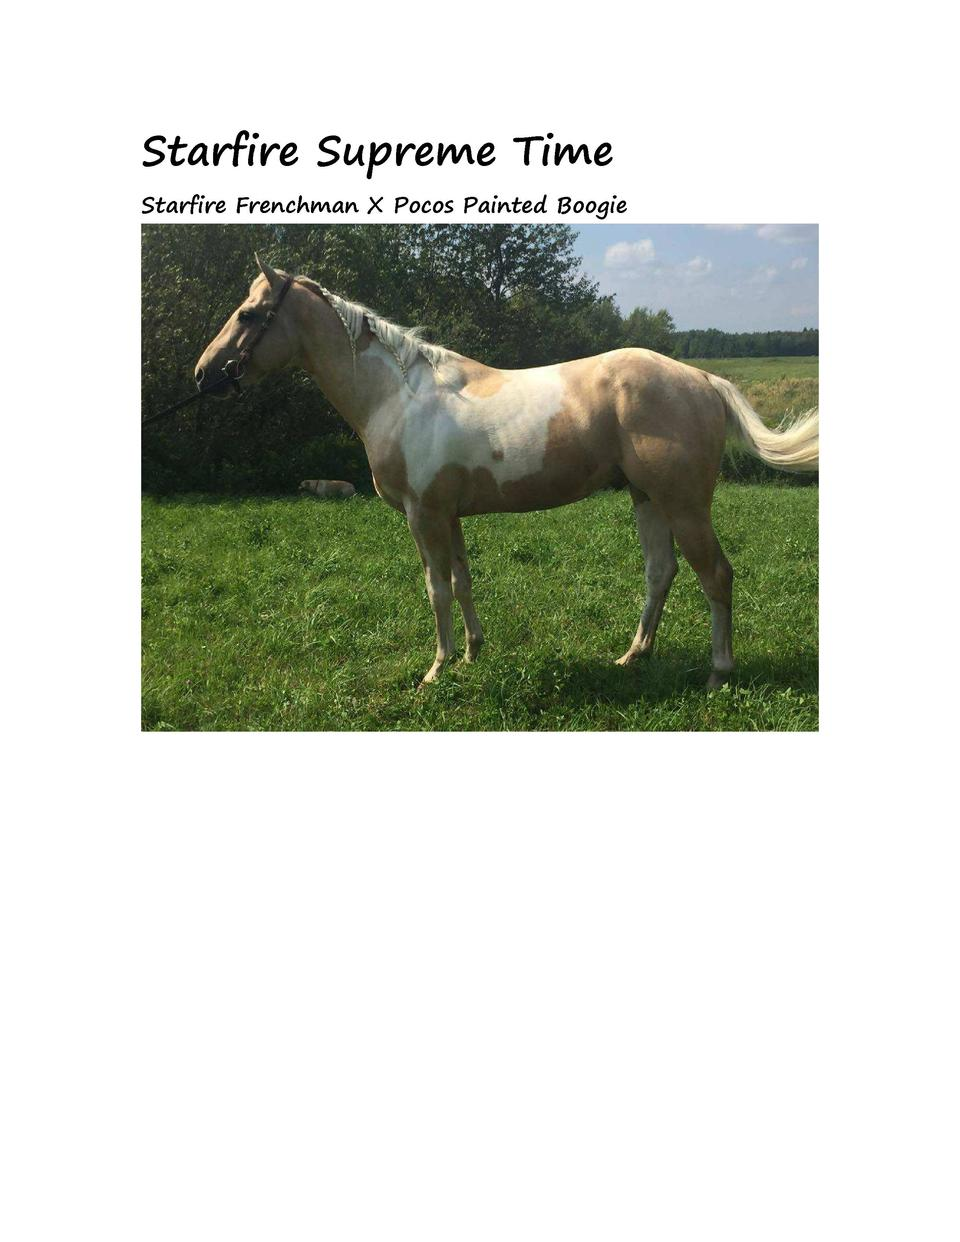 Starfire Supreme Time Starfire Frenchman X Pocos Painted Boogie